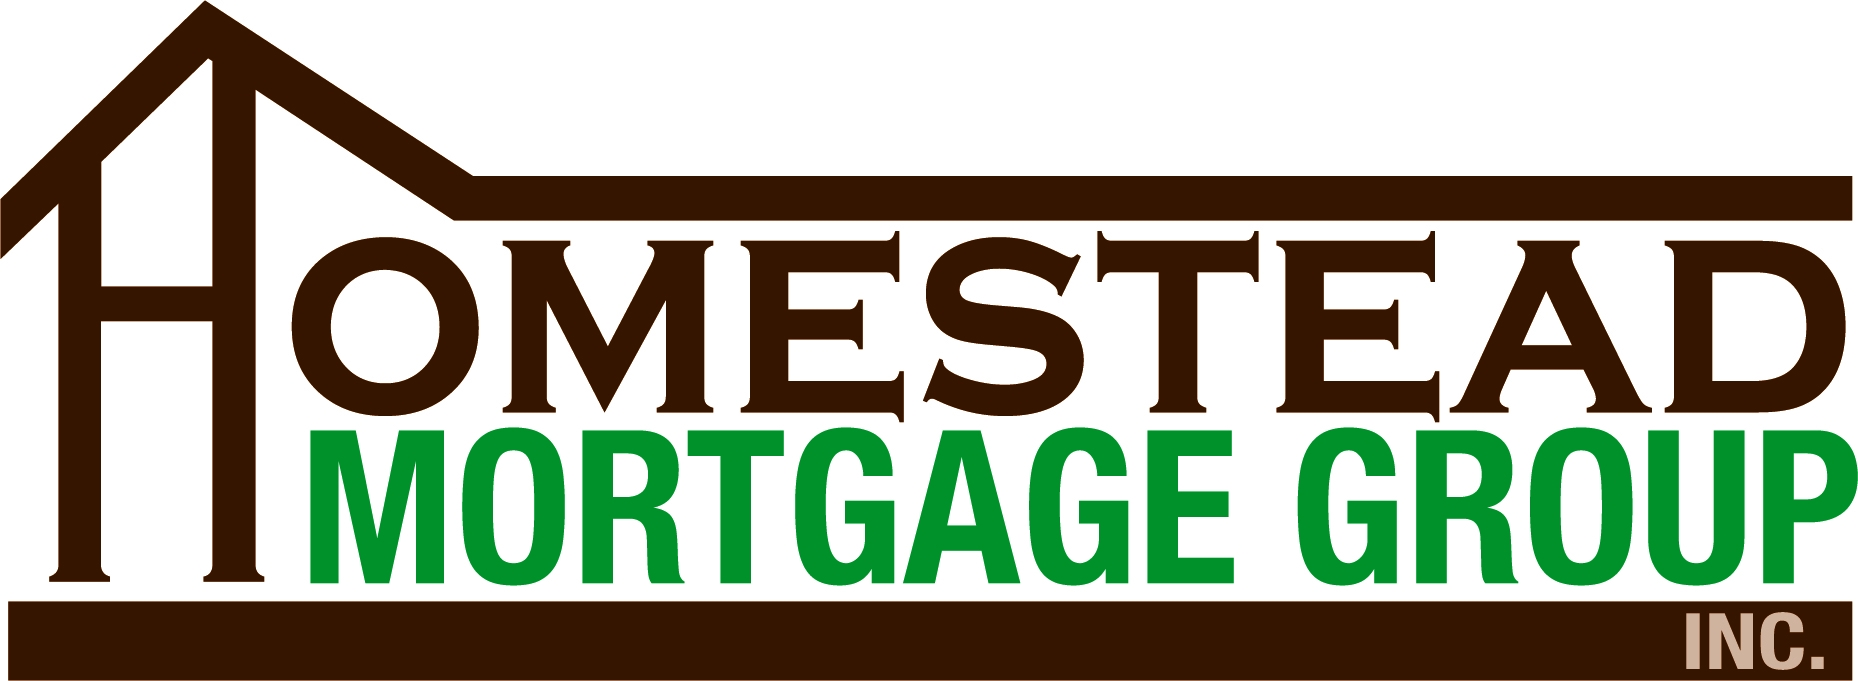 Homestead Mortgage Group